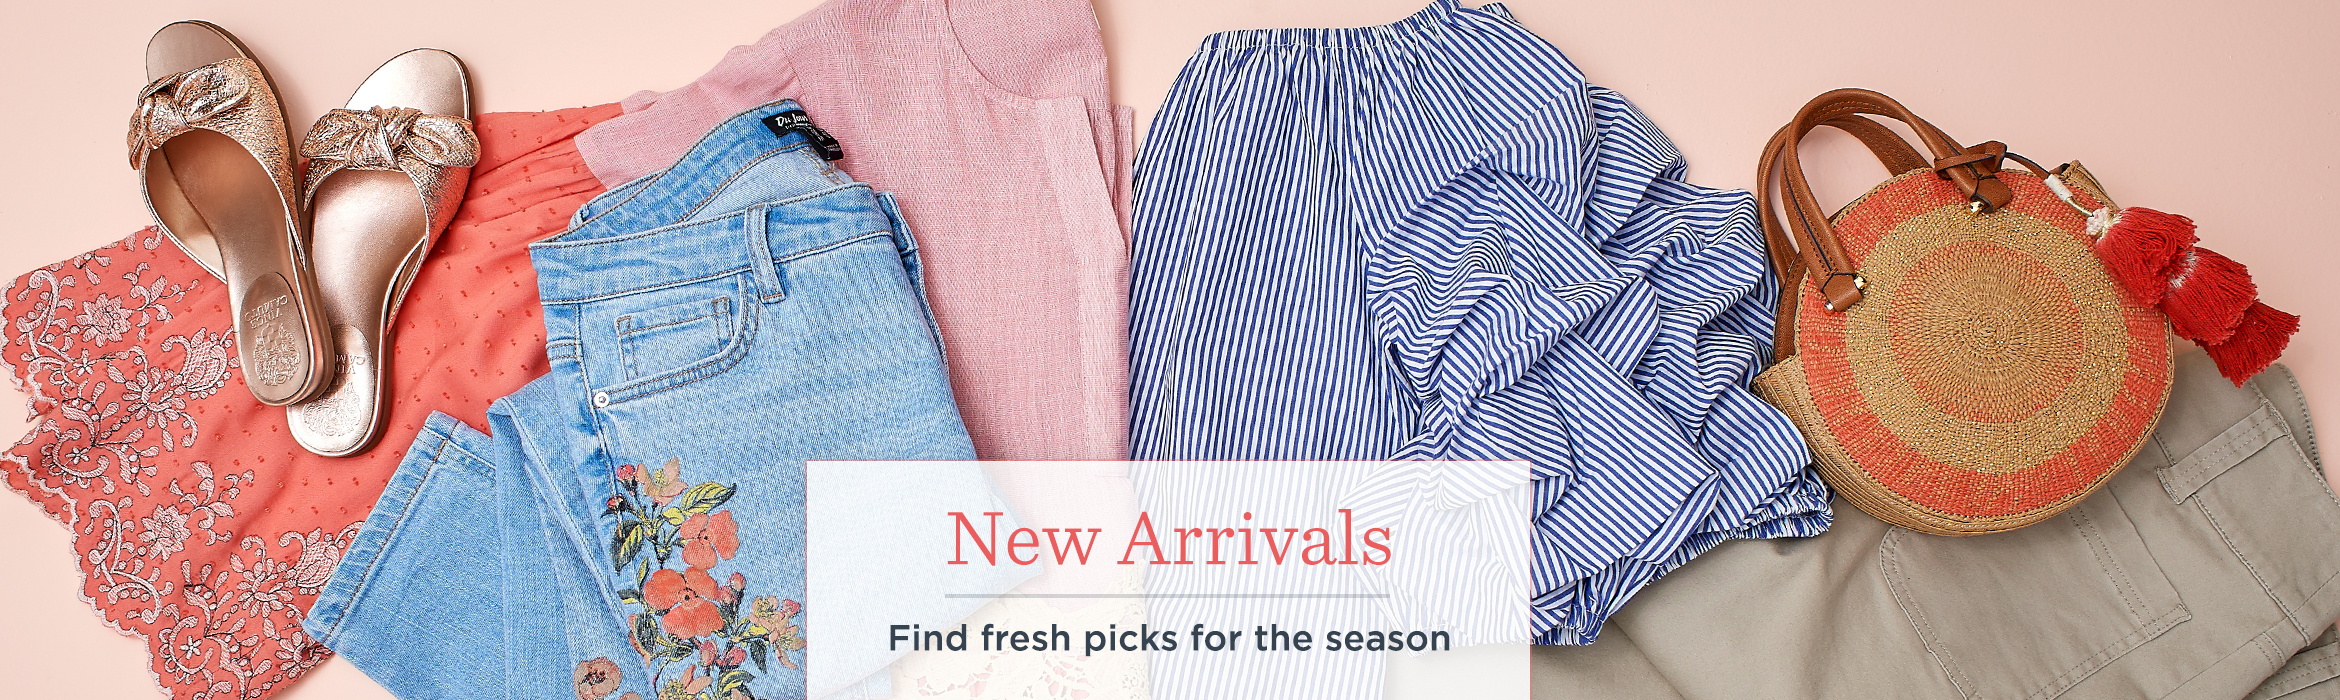 New Arrivals -- Find fresh picks for the season